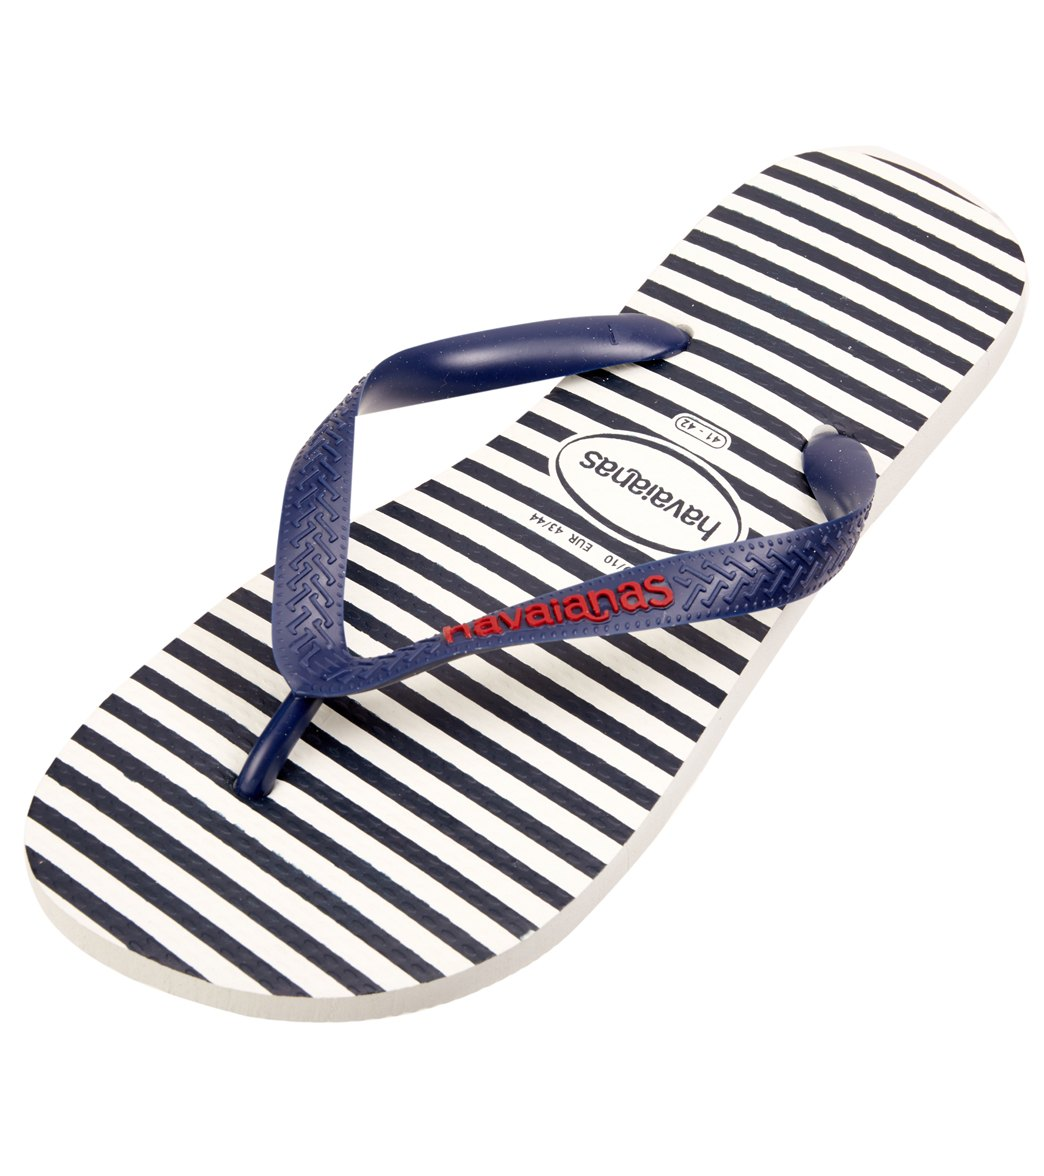 dfc430fe2ad Havaianas Men s Top Nautical Flip Flop